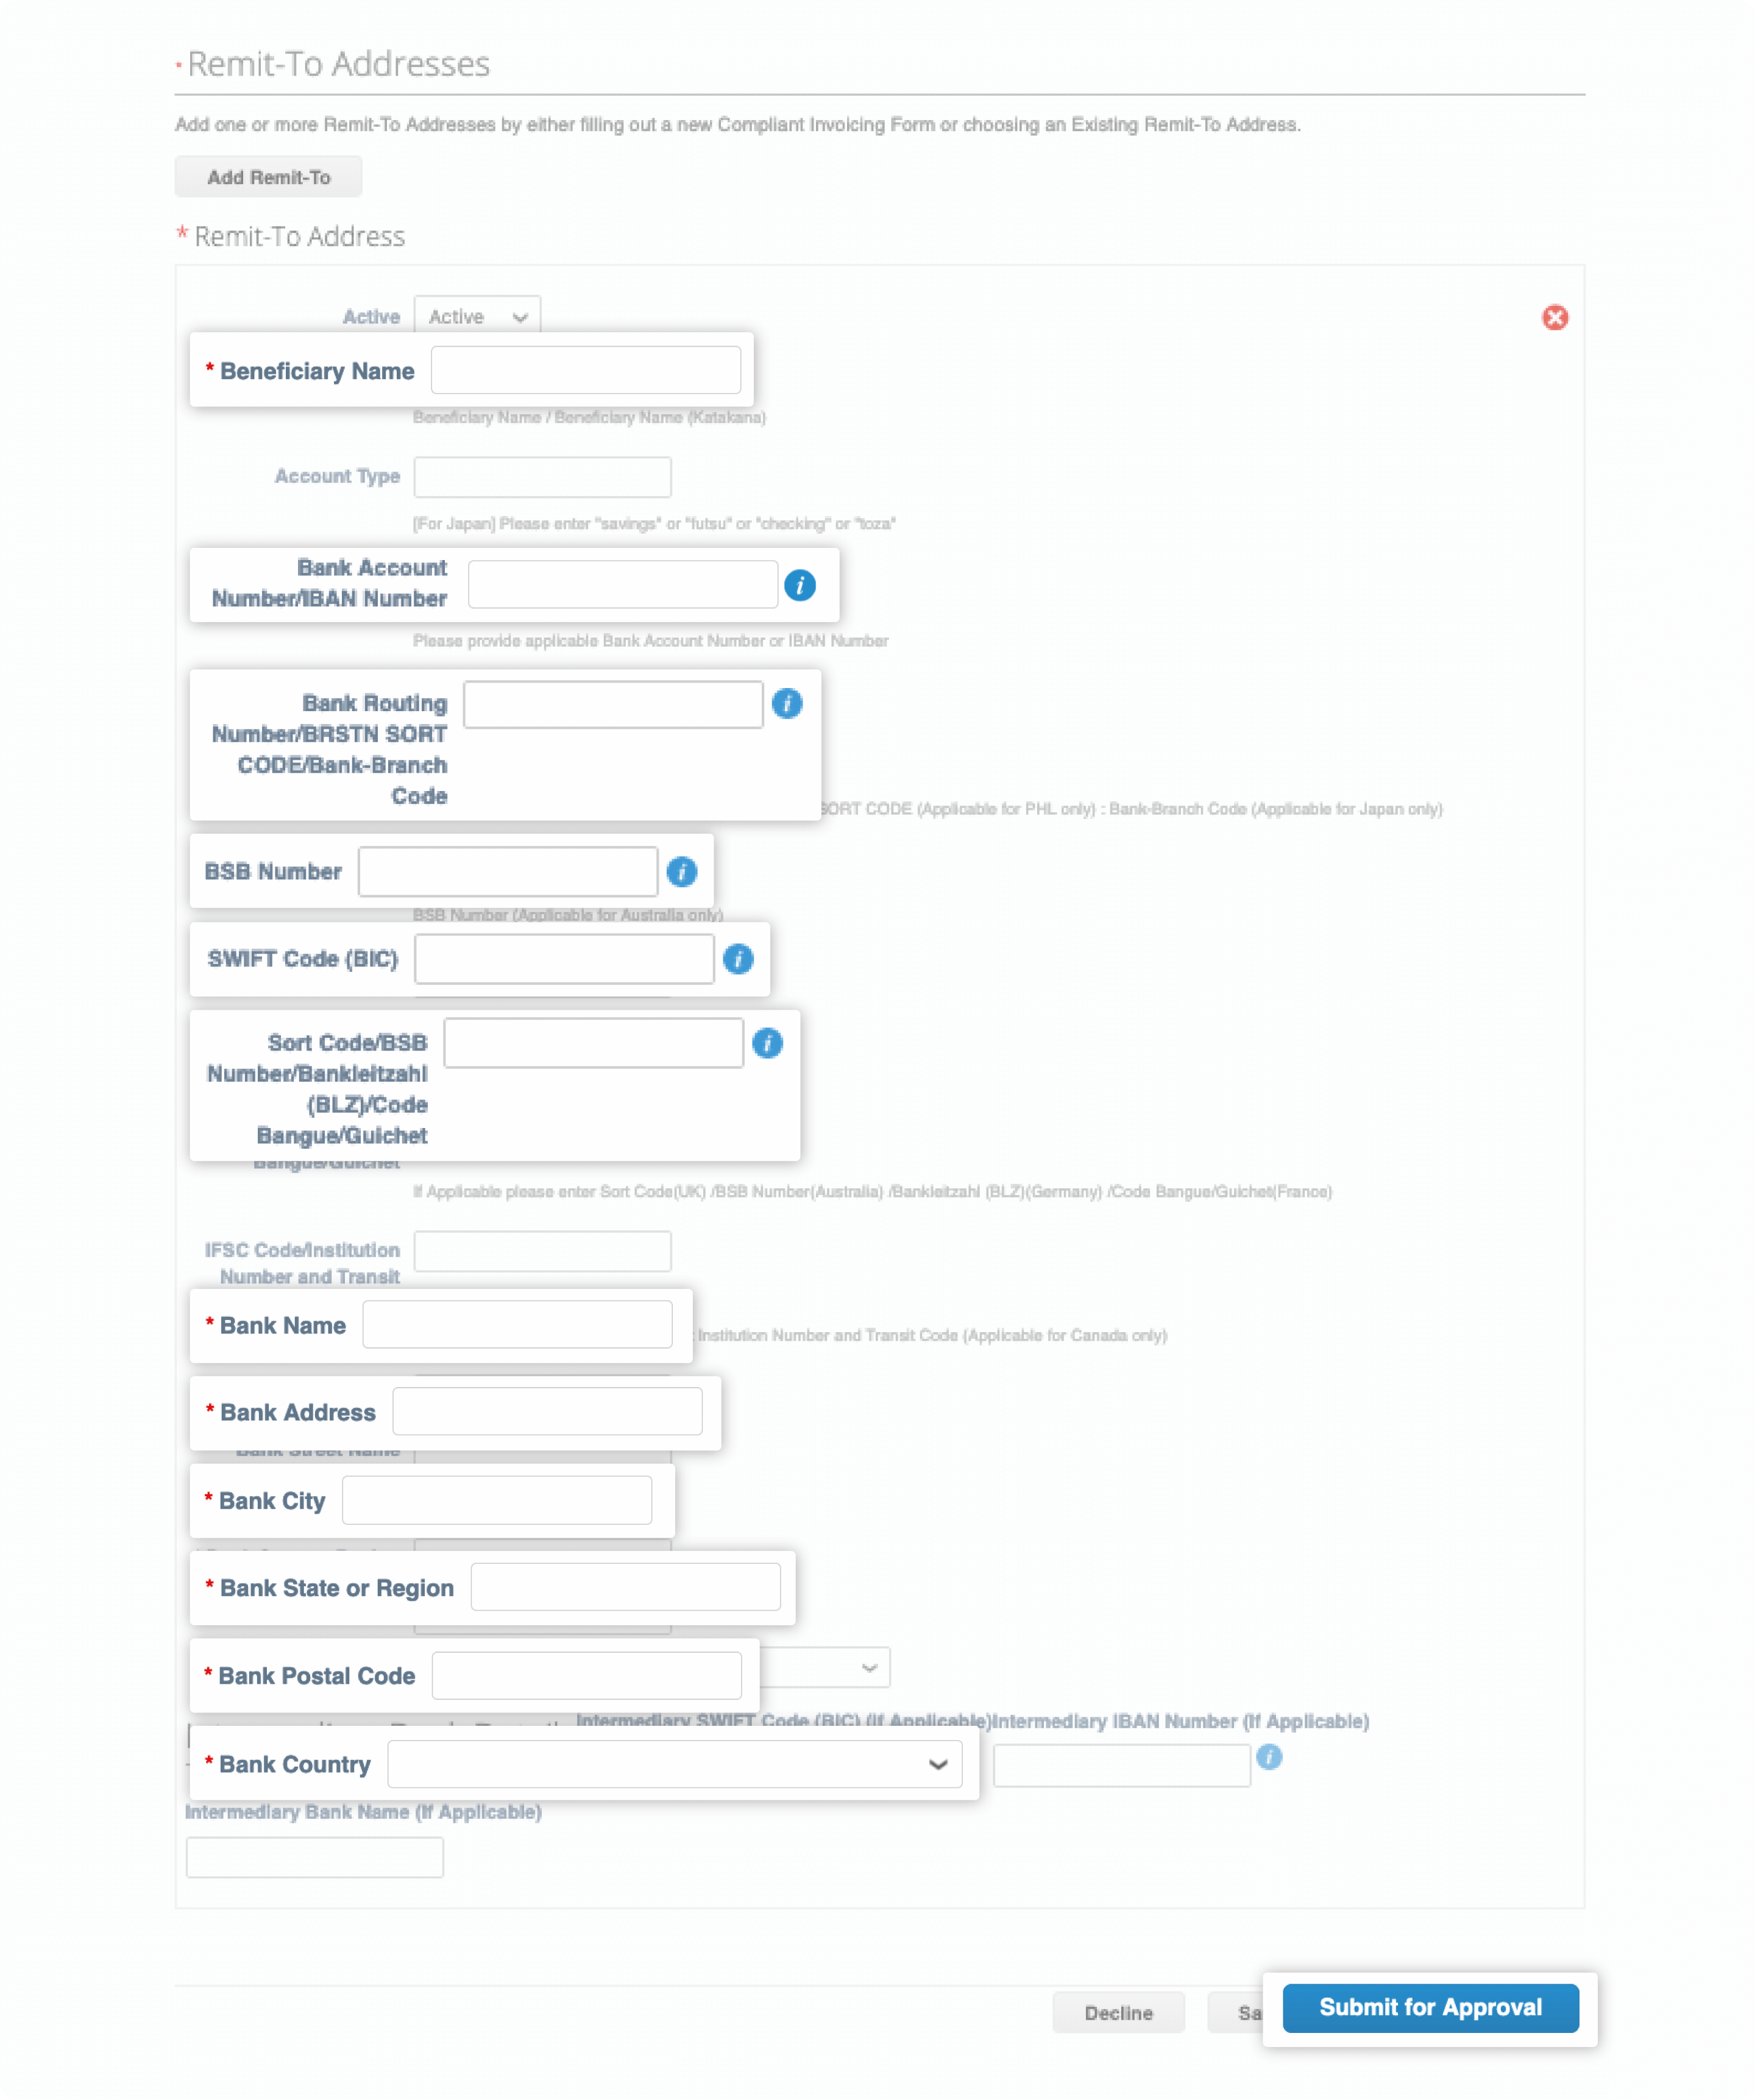 Scroll down and go to Payment section, click the dropdown arrow to display payment date